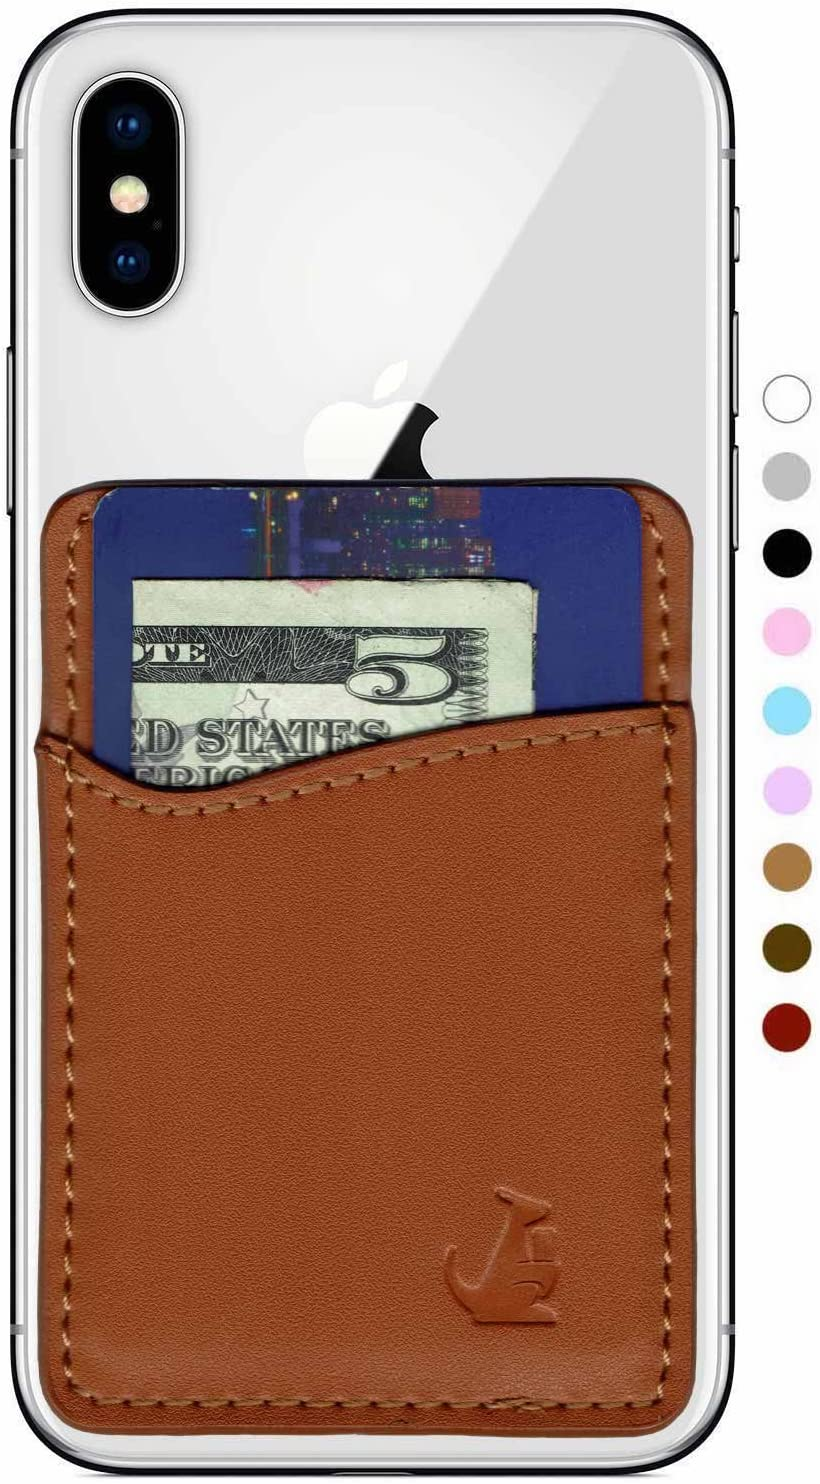 WALLAROO Premium Leather Phone Card Holder Stick On Wallet for iPhone and Android Smartphones Kangaroo (Brown Leather) by Wallaro